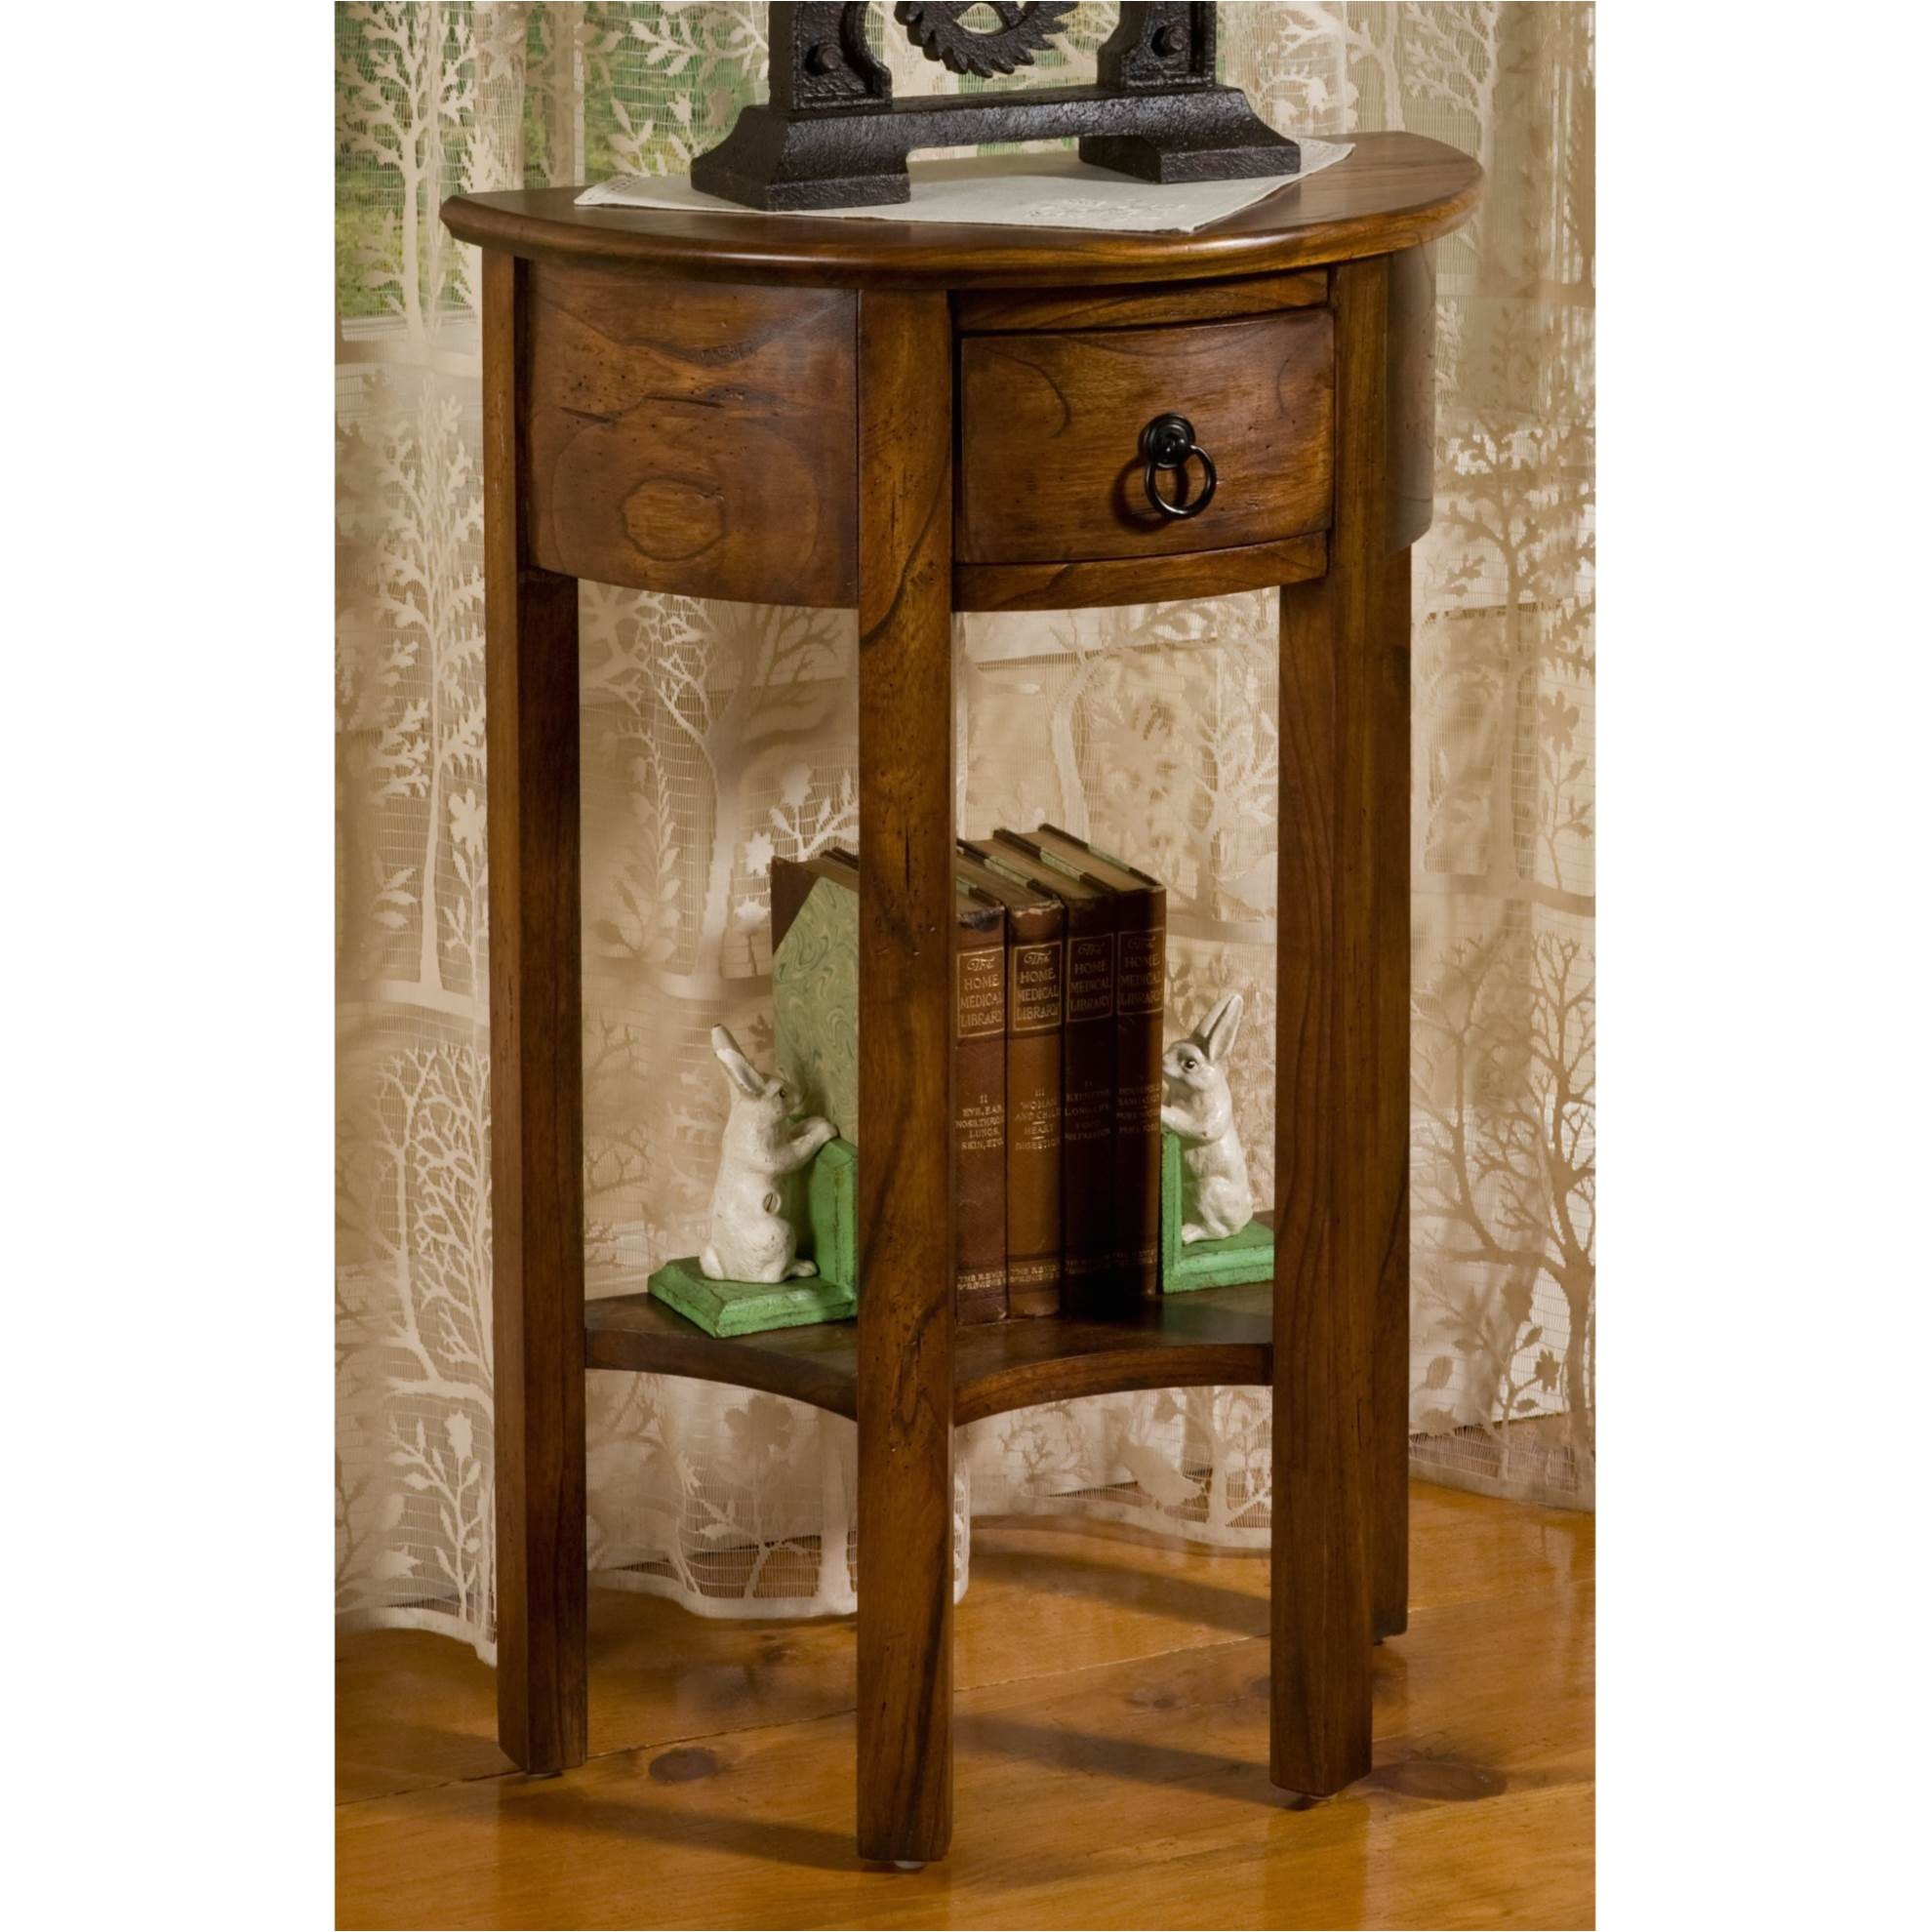 Accent Tables at Hobby Lobby Nontraditional Uses for Accent Tables In the Home